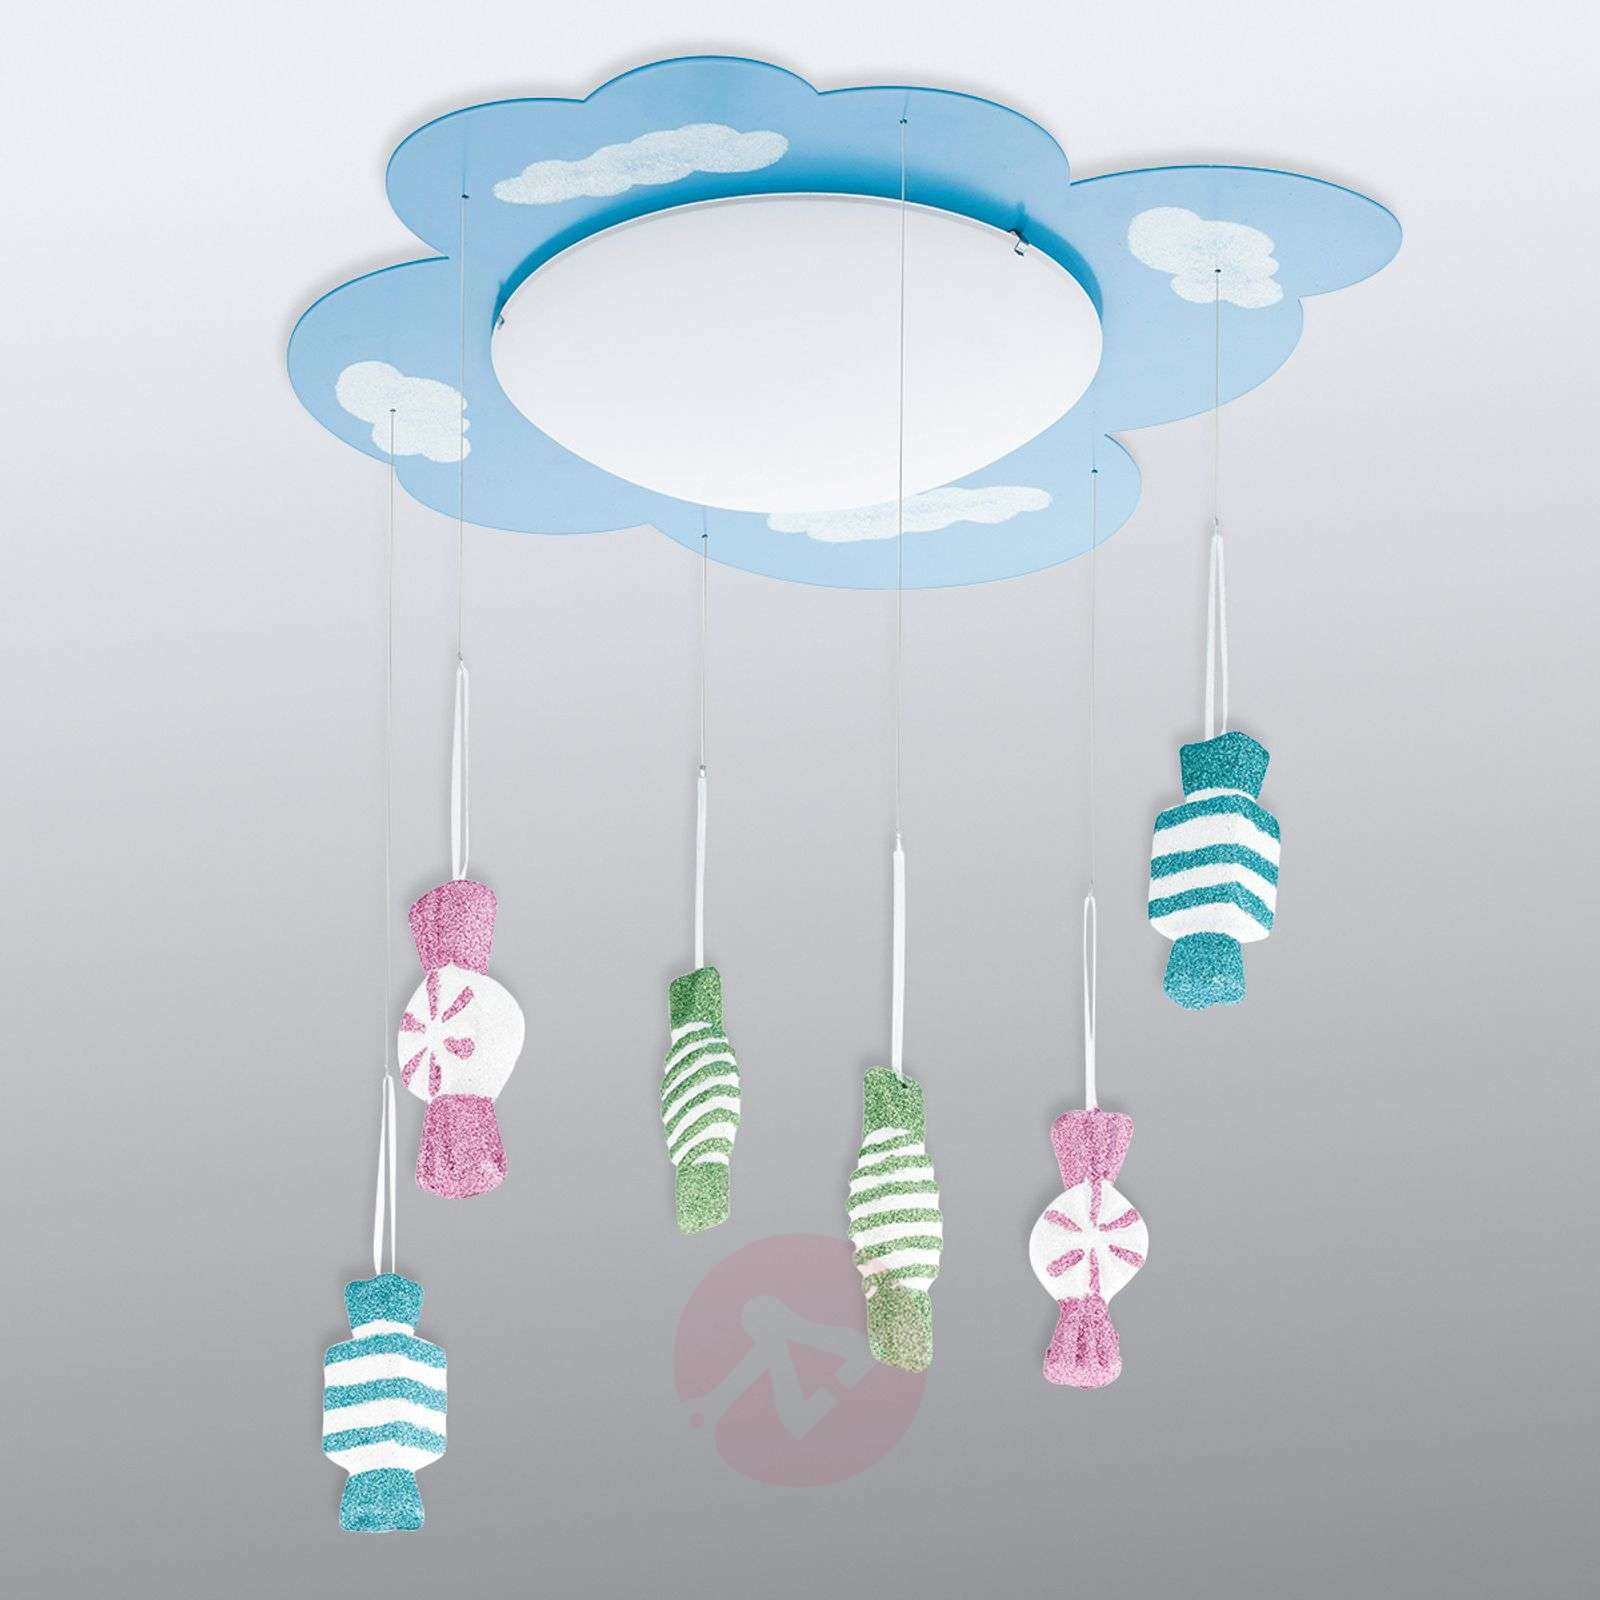 Junior 3 a ceiling light with sweets-3031779-01